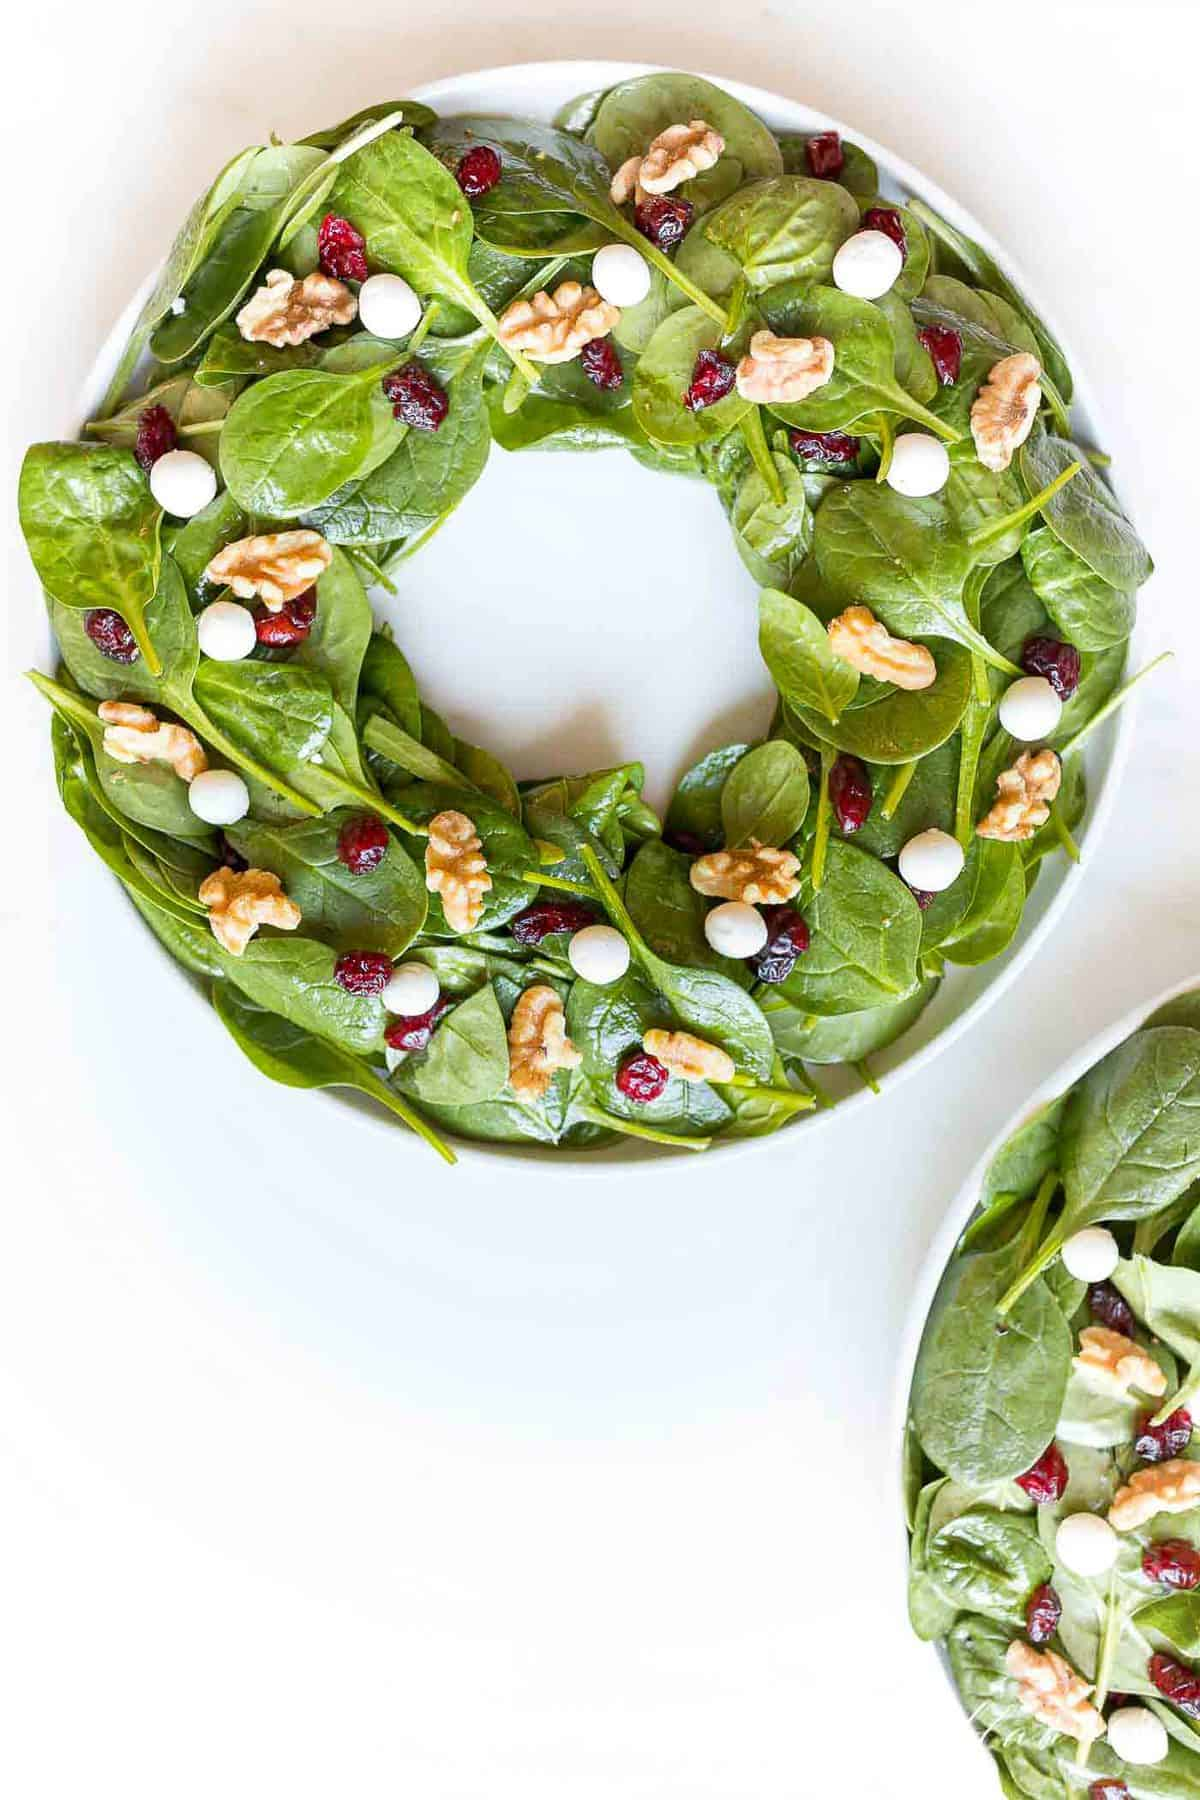 a spinach salad with cranberries goat cheese balls and nuts in the shape of a christmas wreath